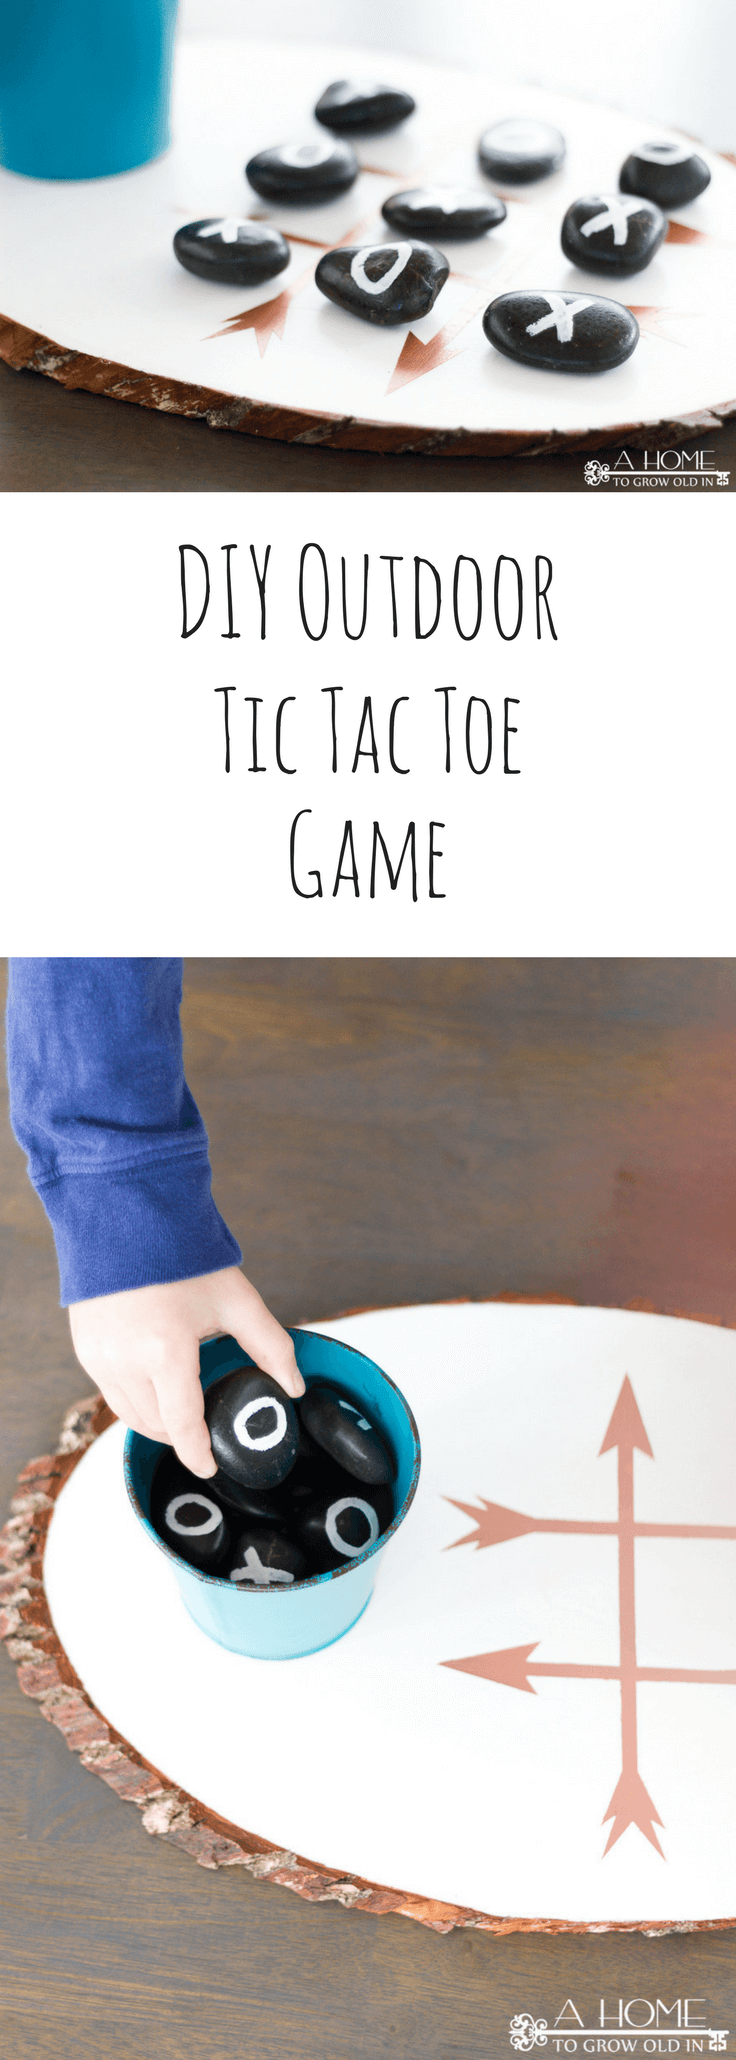 This DIY outdoor tic tac toe board is so easy to make and a really fun game to add to your outdoor game collection.